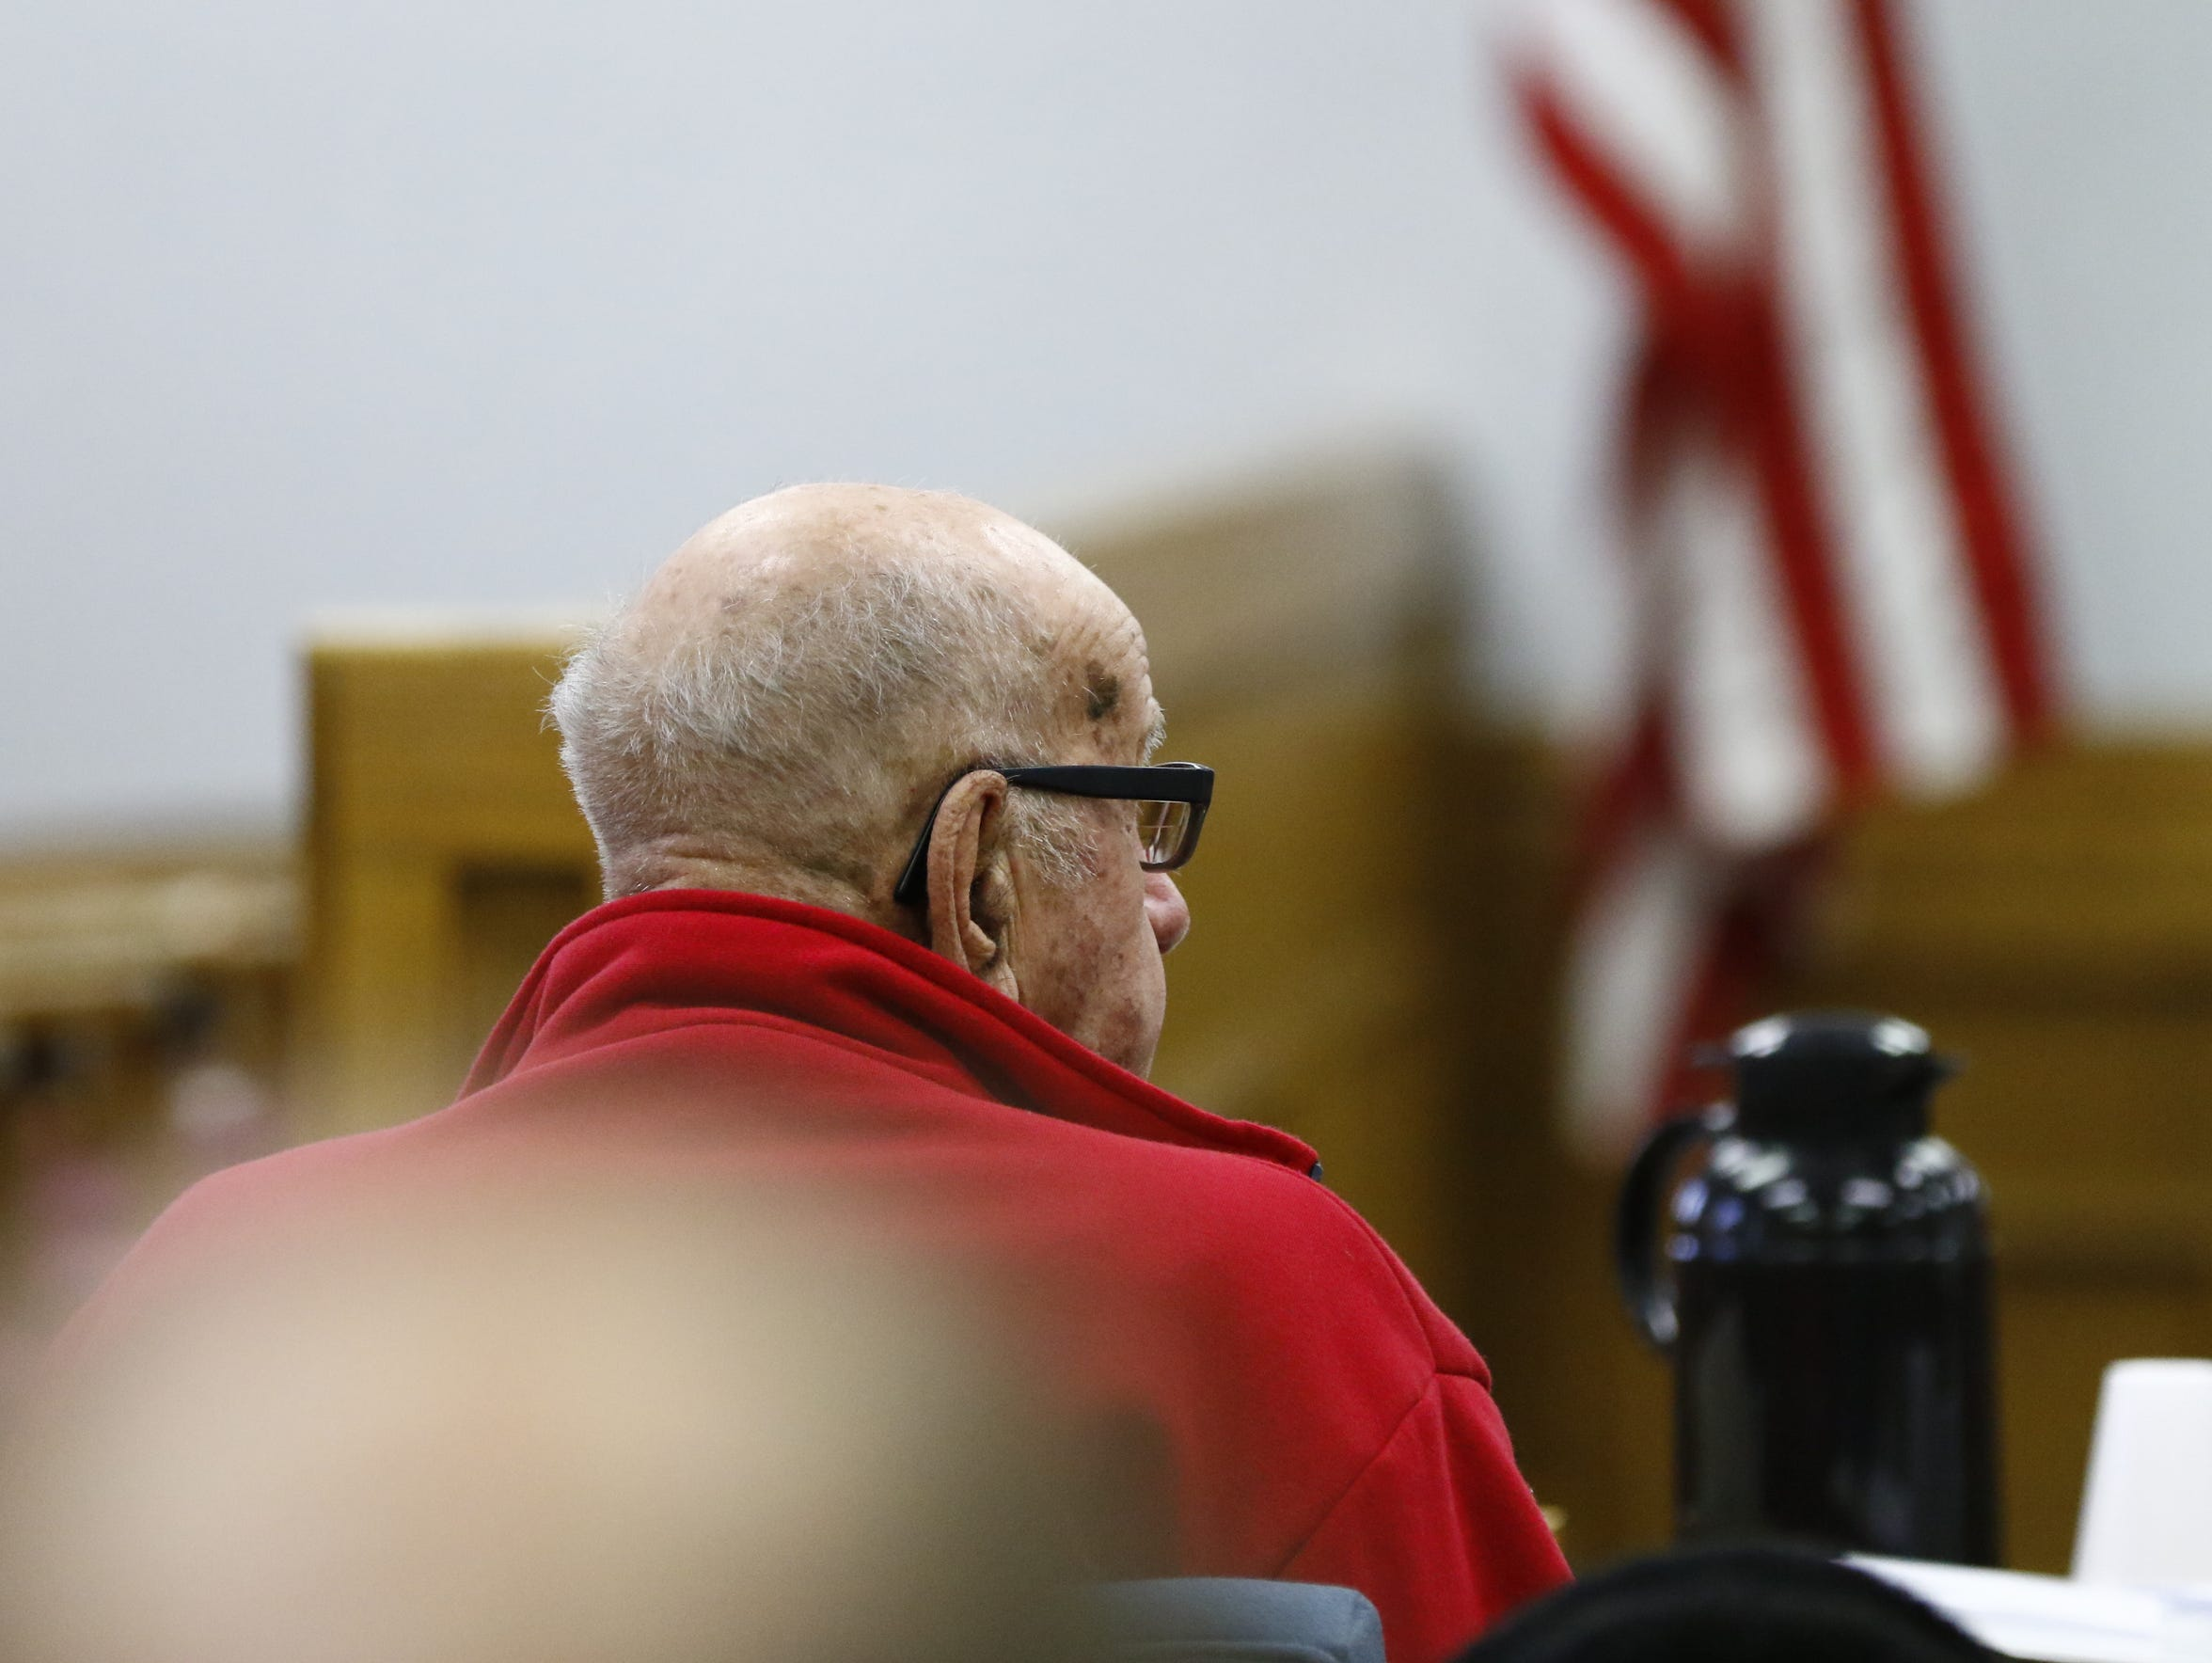 Edward Heckendorf, 92, sits through a trial on Feb.